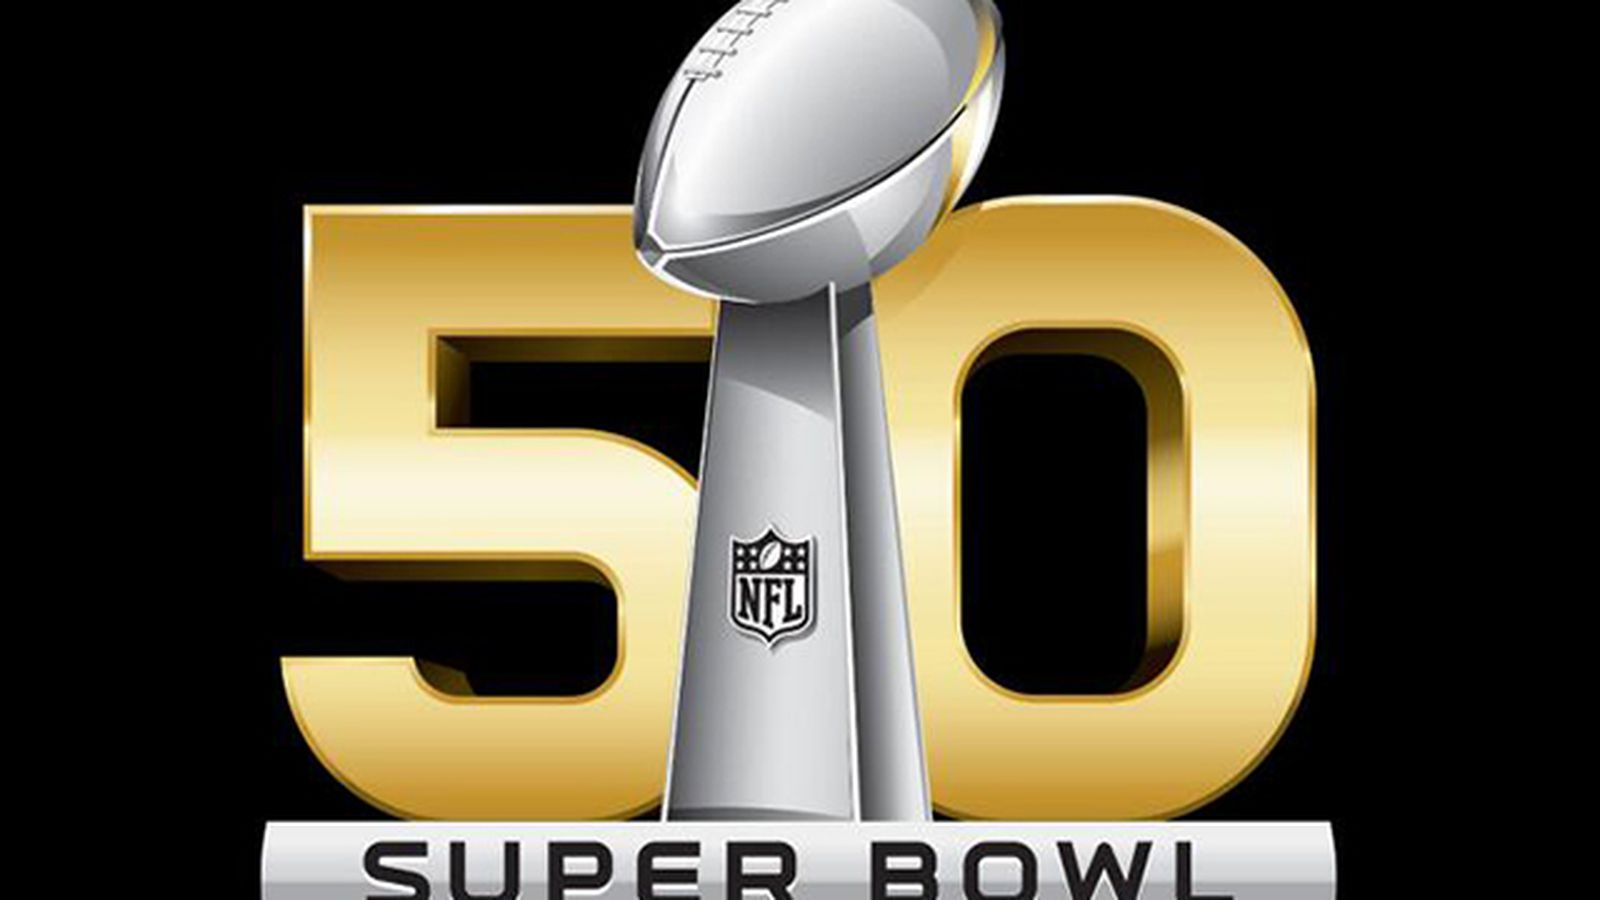 Super bowl 2016 dates